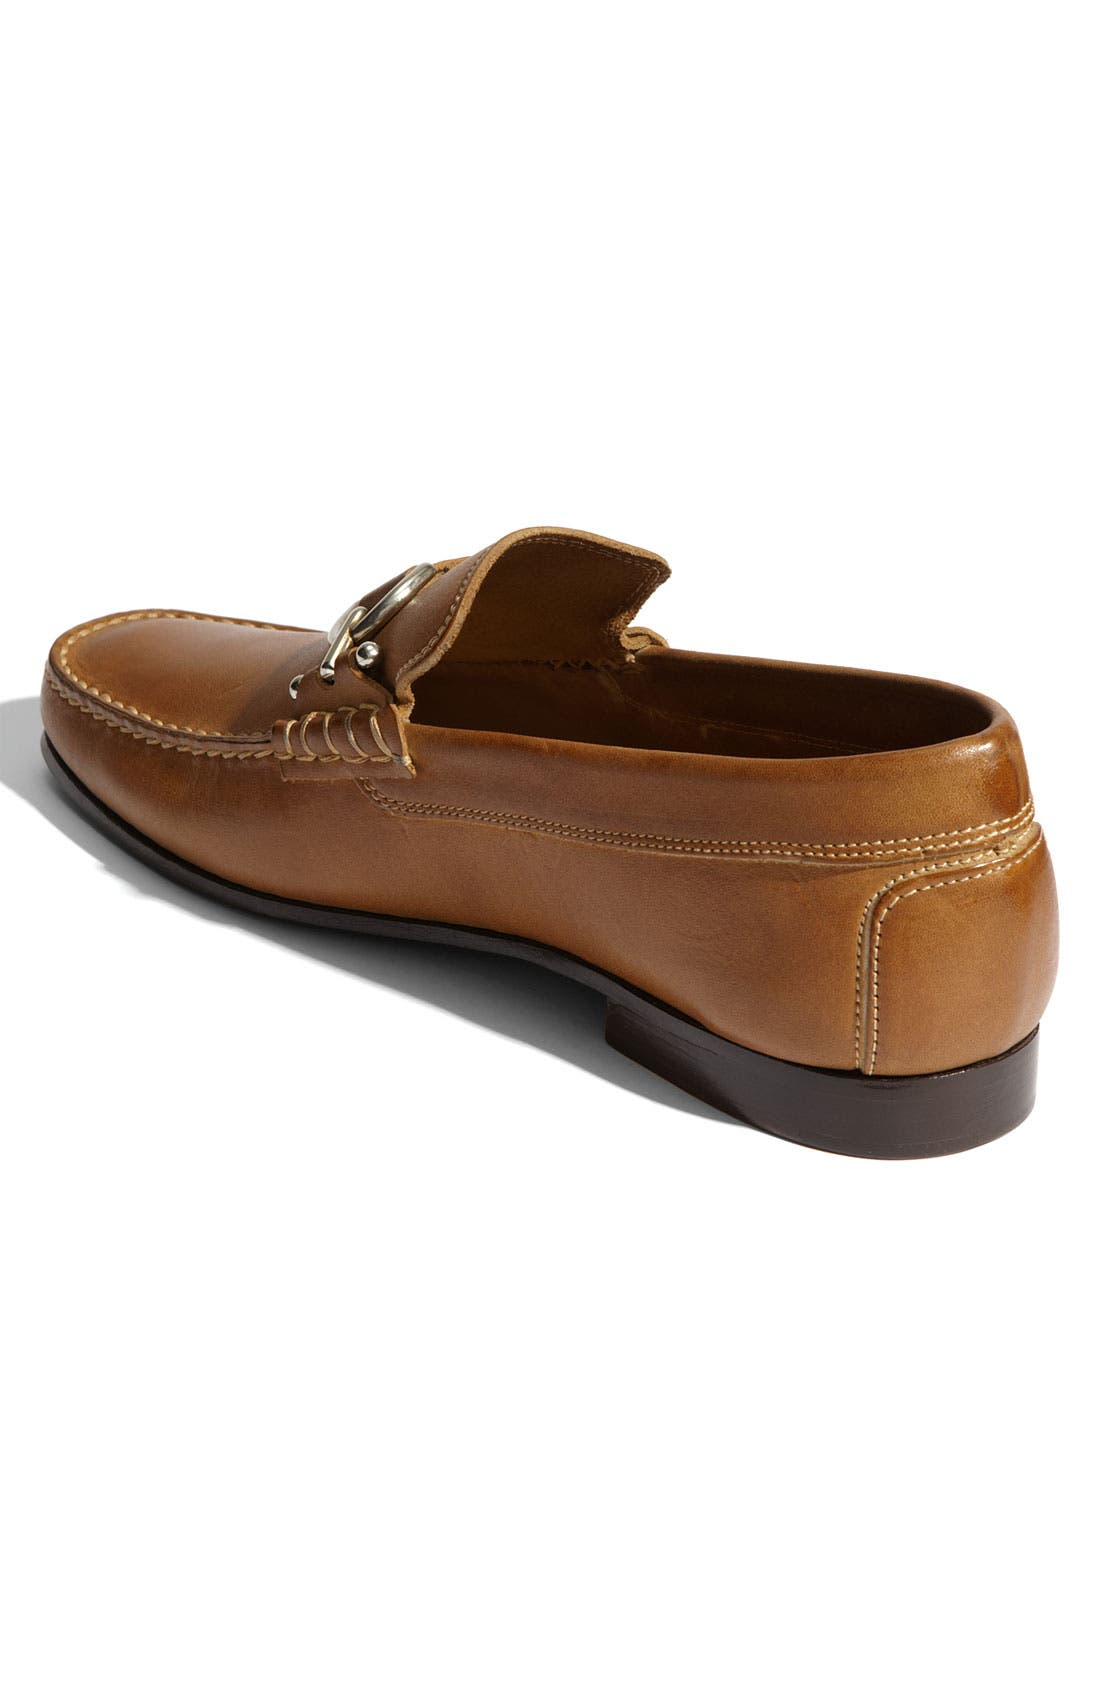 Alternate Image 2  - Donald J Pliner 'Dacio' Loafer